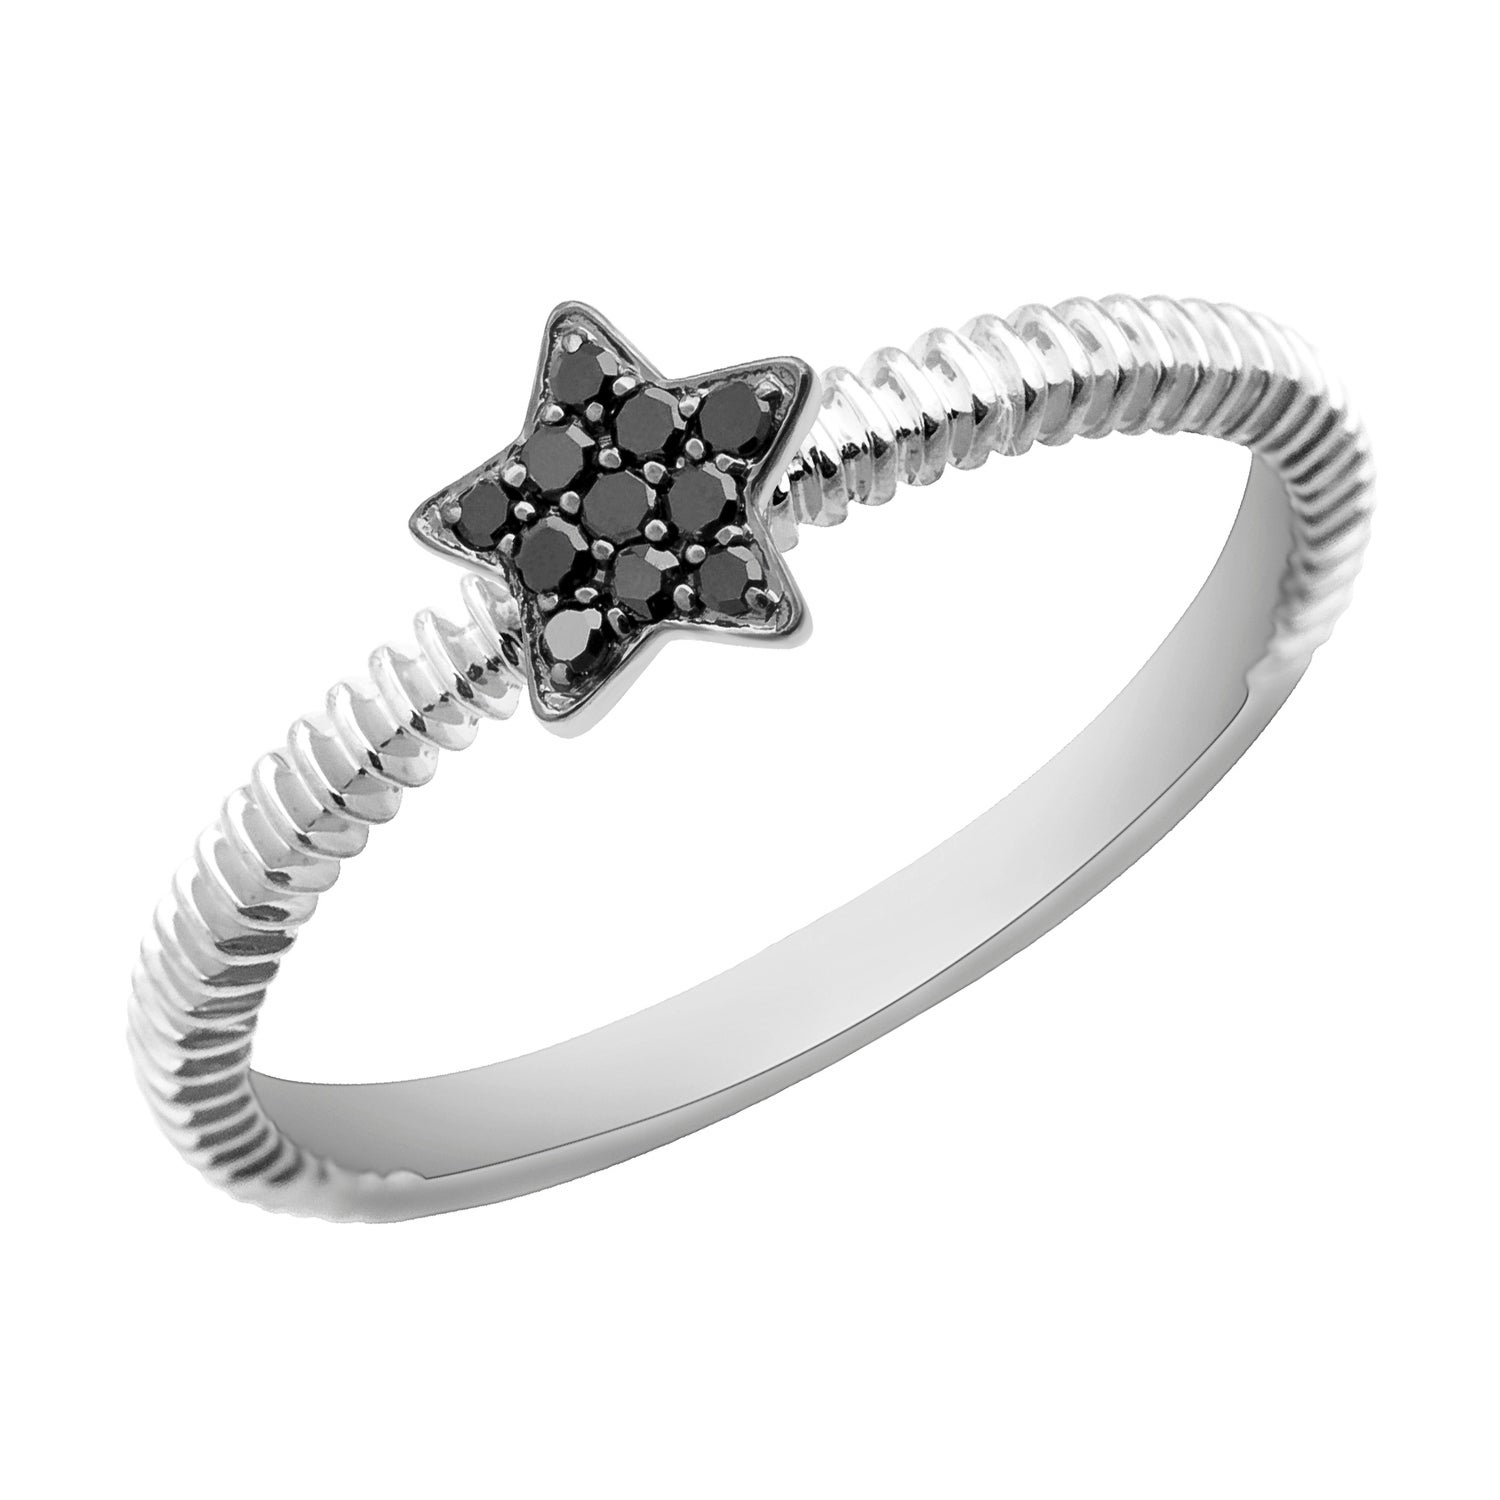 Prism Jewel 0.08Ct Round Color Diamond Star Shaped Fancy Ring - Black - Thumbnail 0